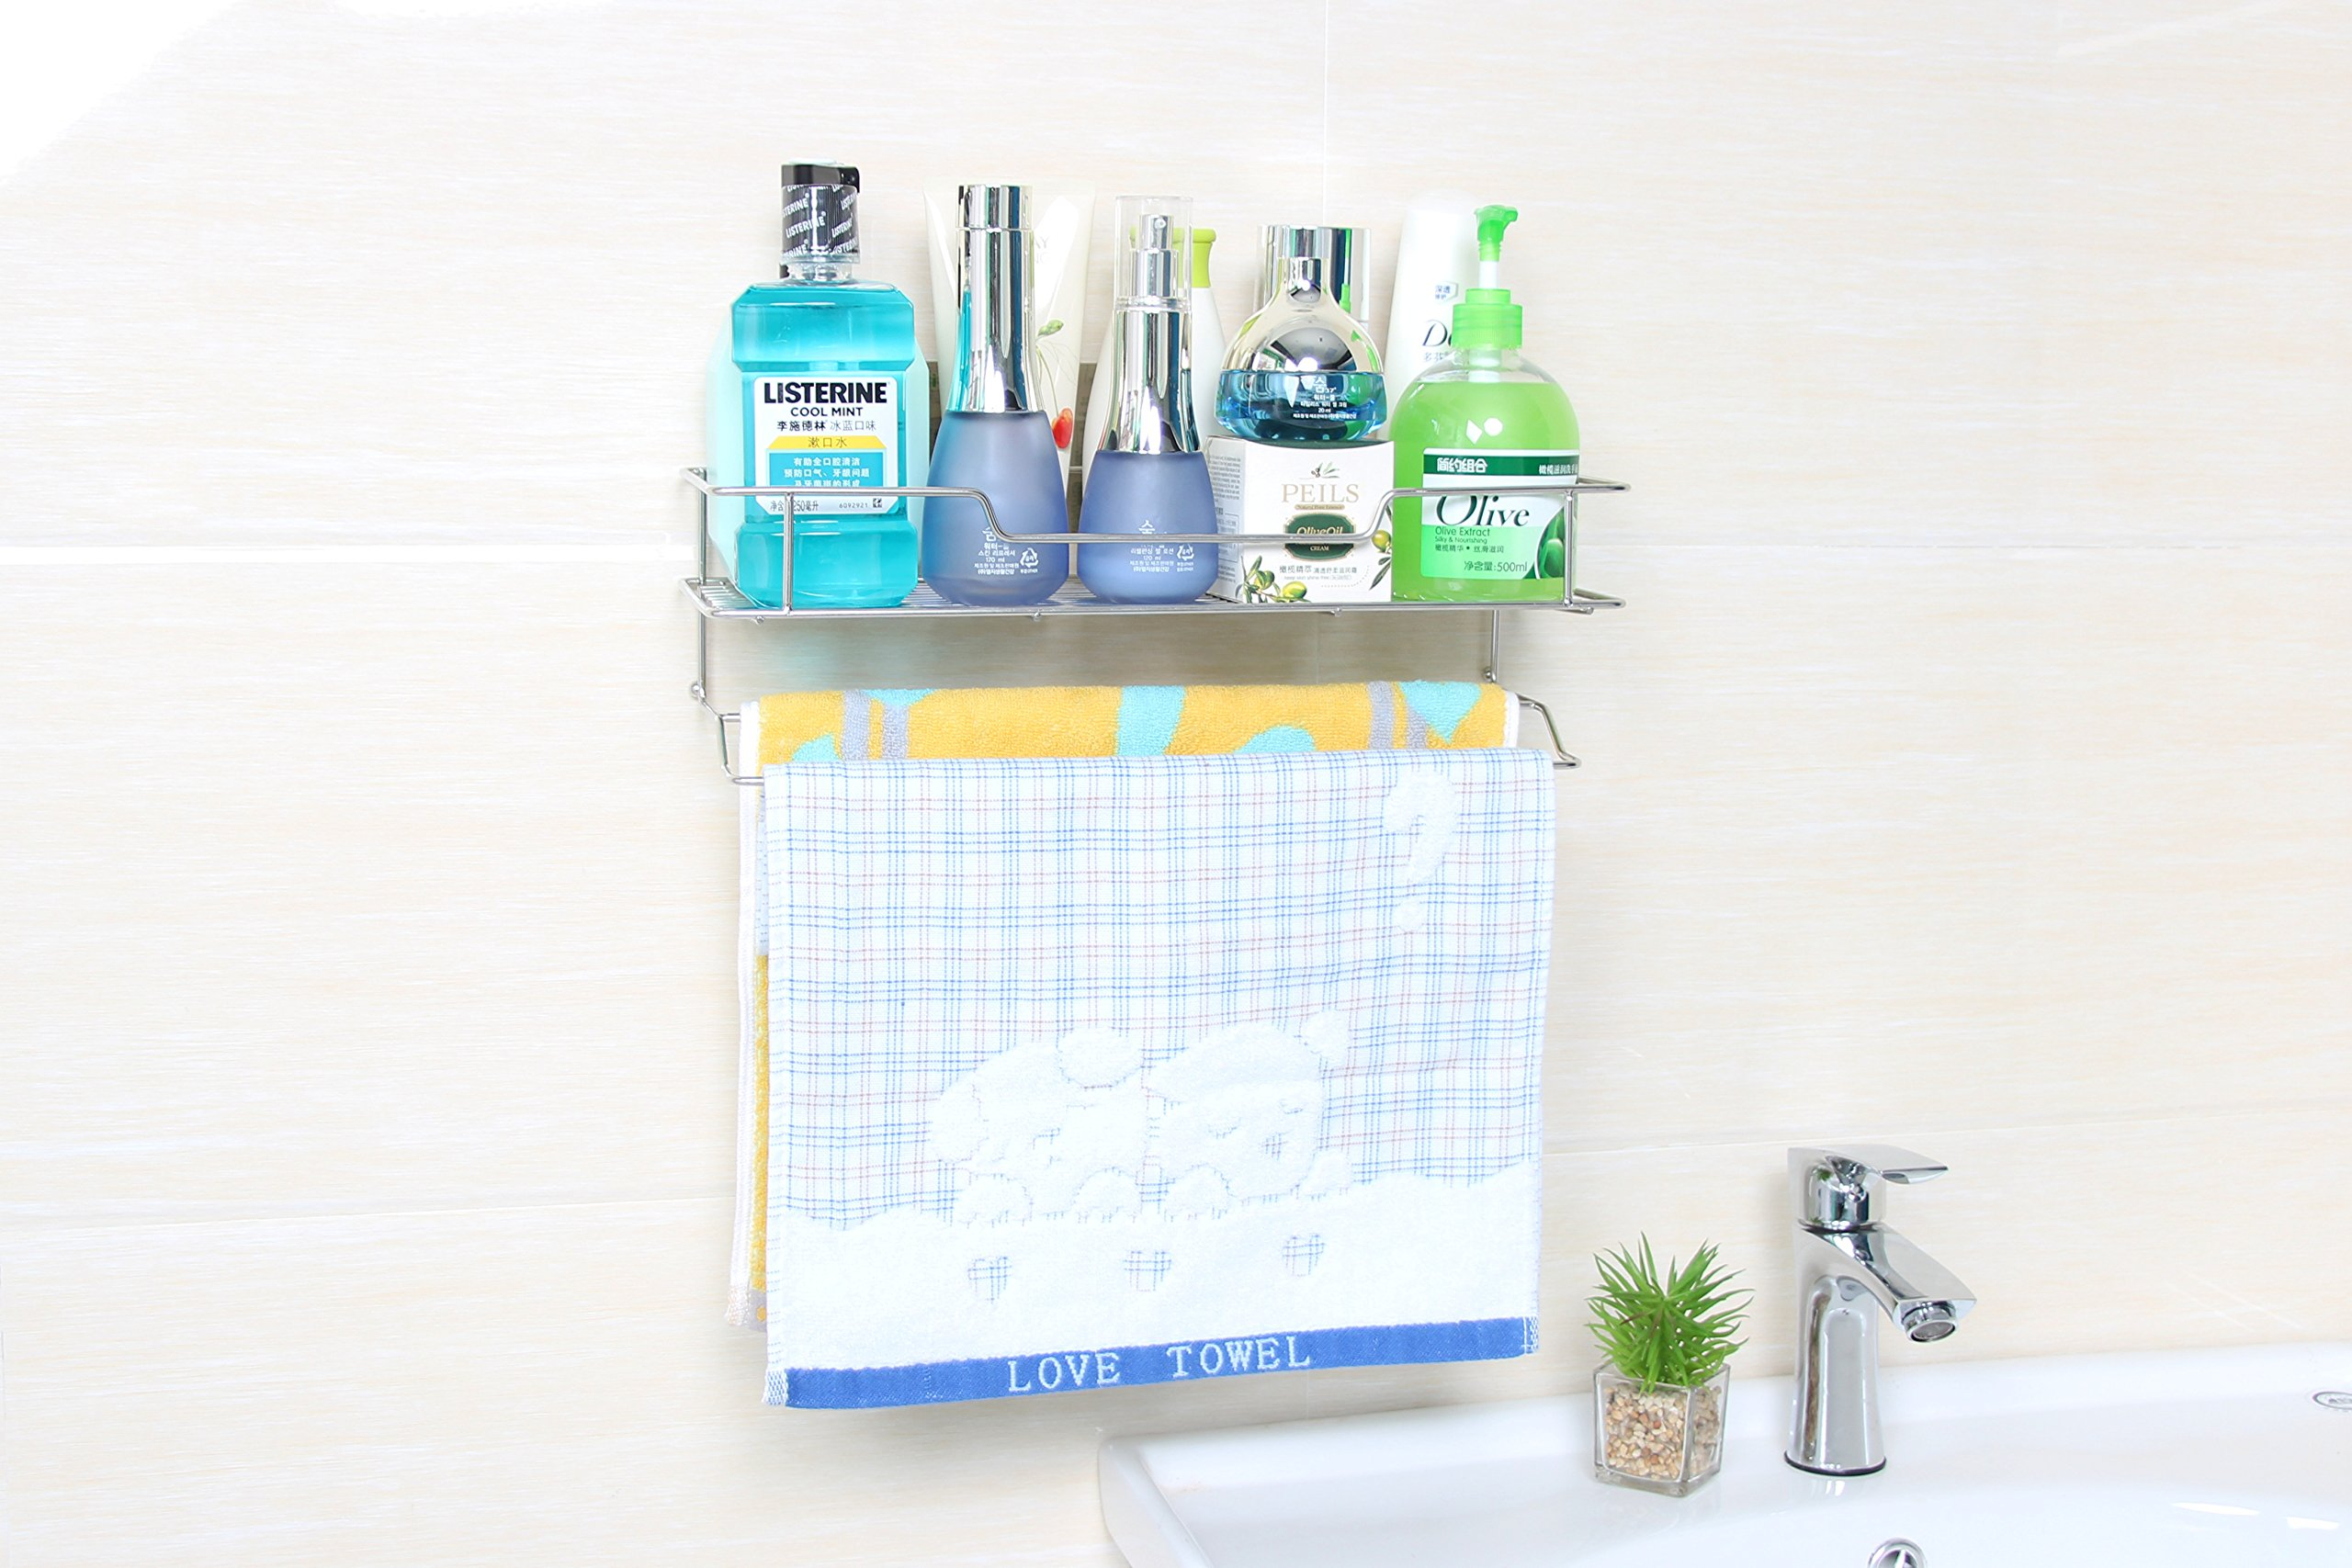 Bathroom Shelf Organizer Storage Kitchen Rack,Shower Caddy for Shampoo Holder, Wall Mounted Corner Shelf Kitchen Spice Holder Organizer for Towel,Super Self Adhesive,Drill Free,Stainless Steel